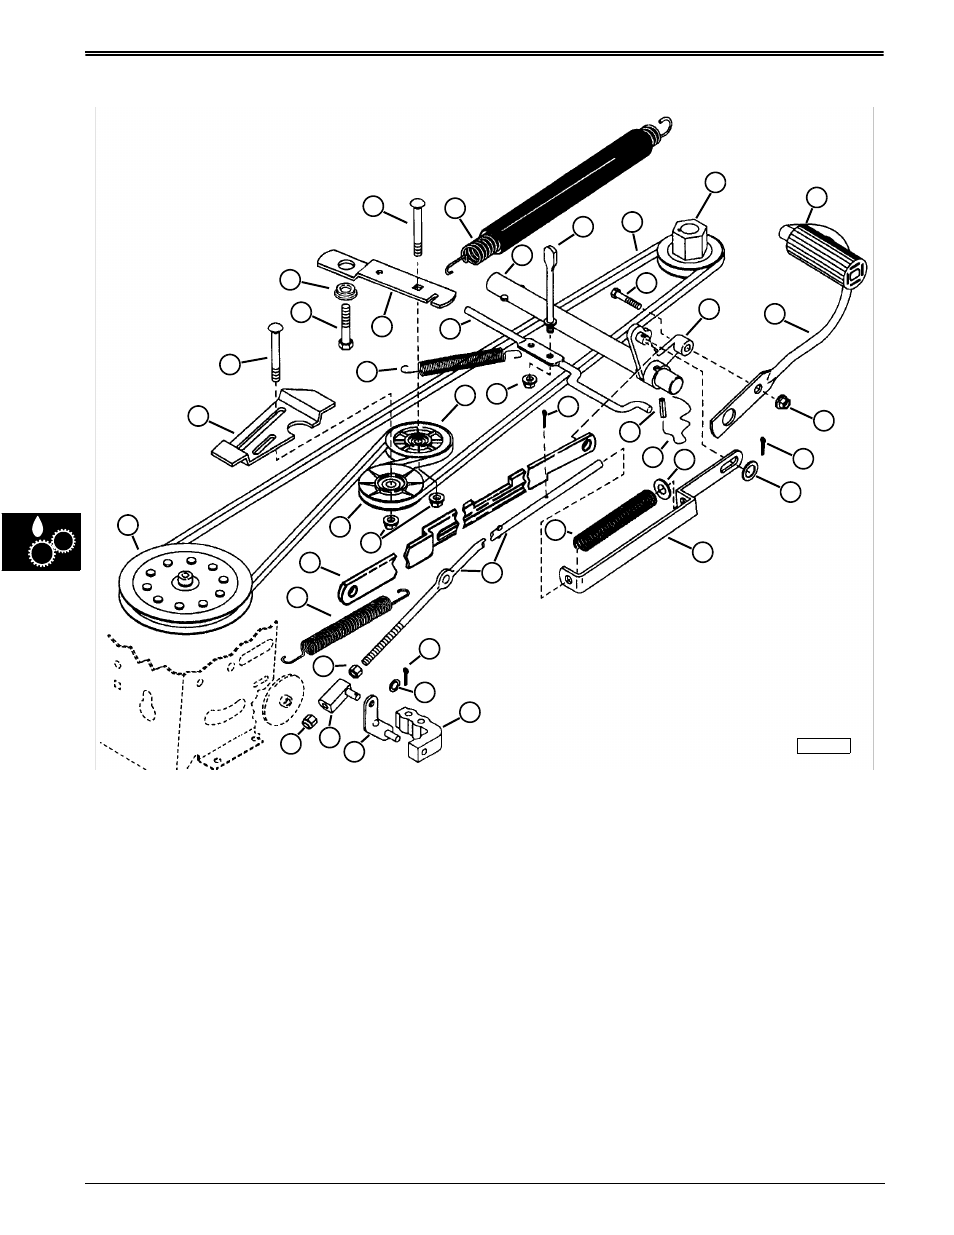 Traction drive system component location, Component